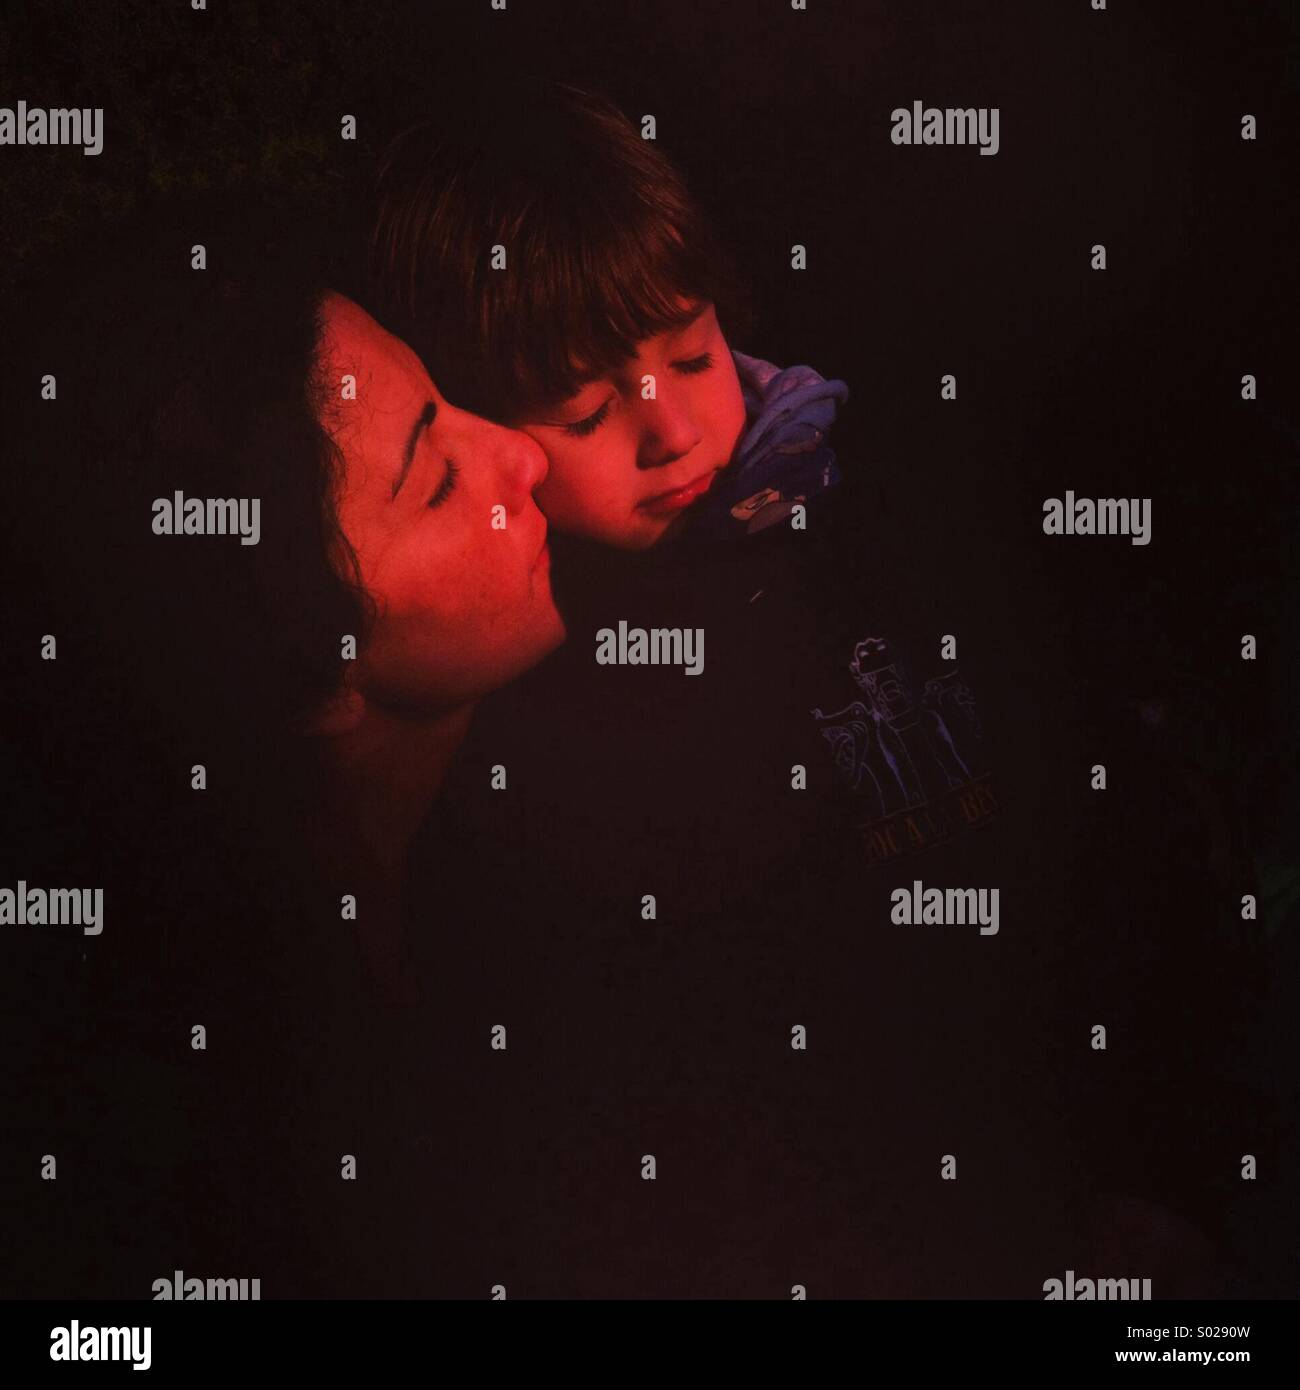 Mother and son on a hug - Stock Image